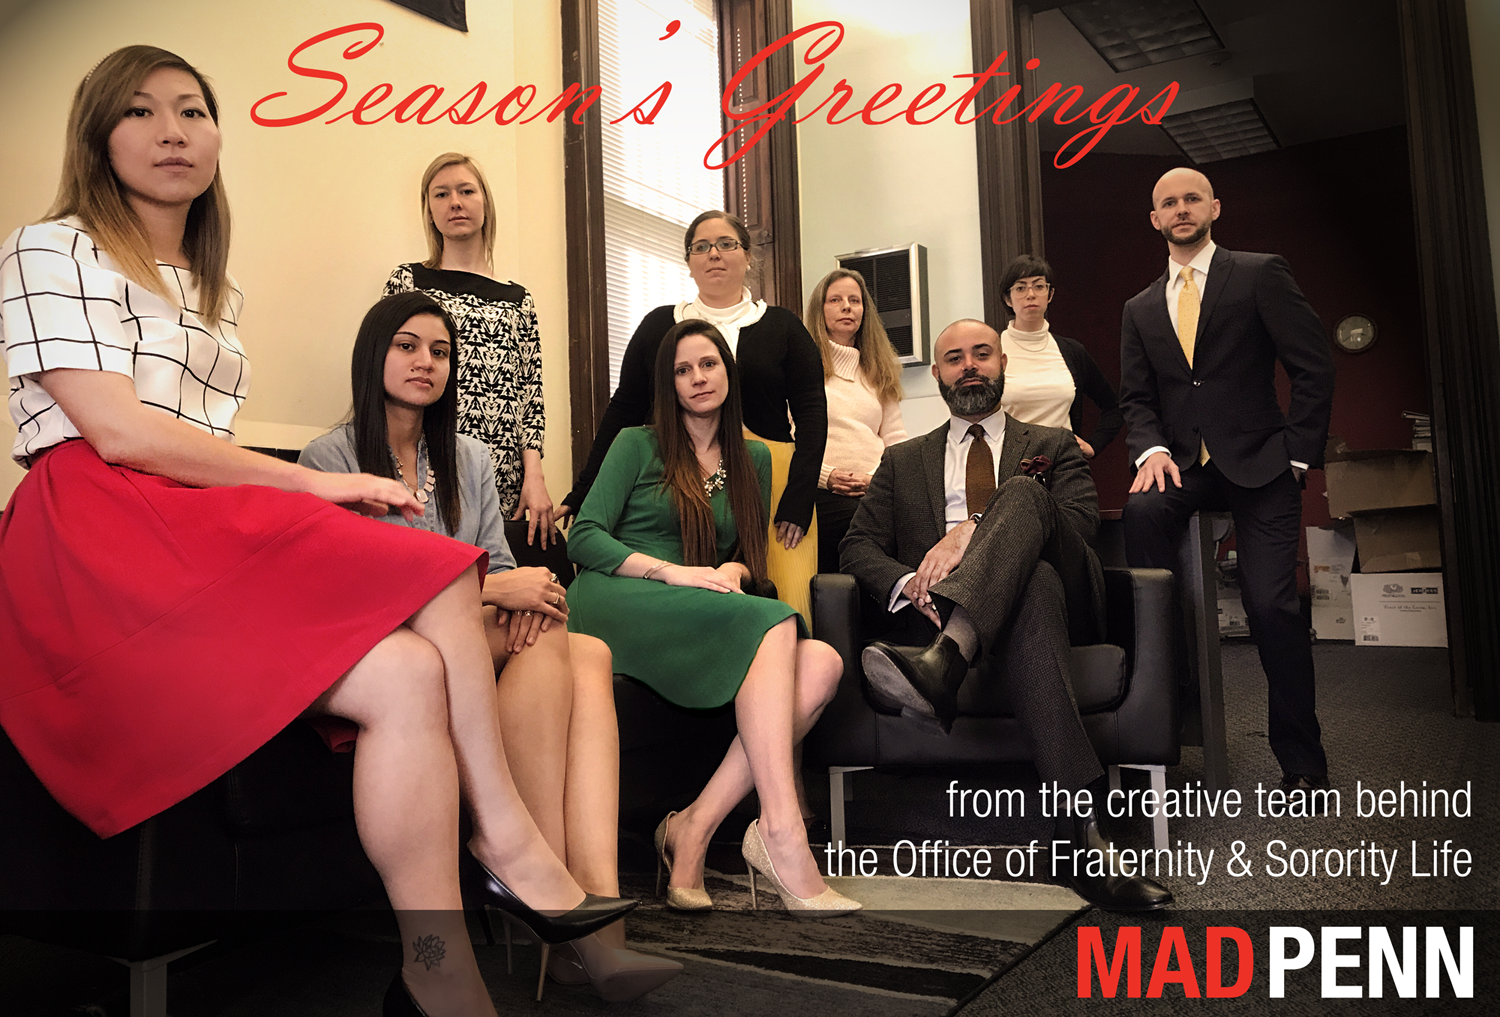 OFSL Holiday Card 2017 - Mad Penn